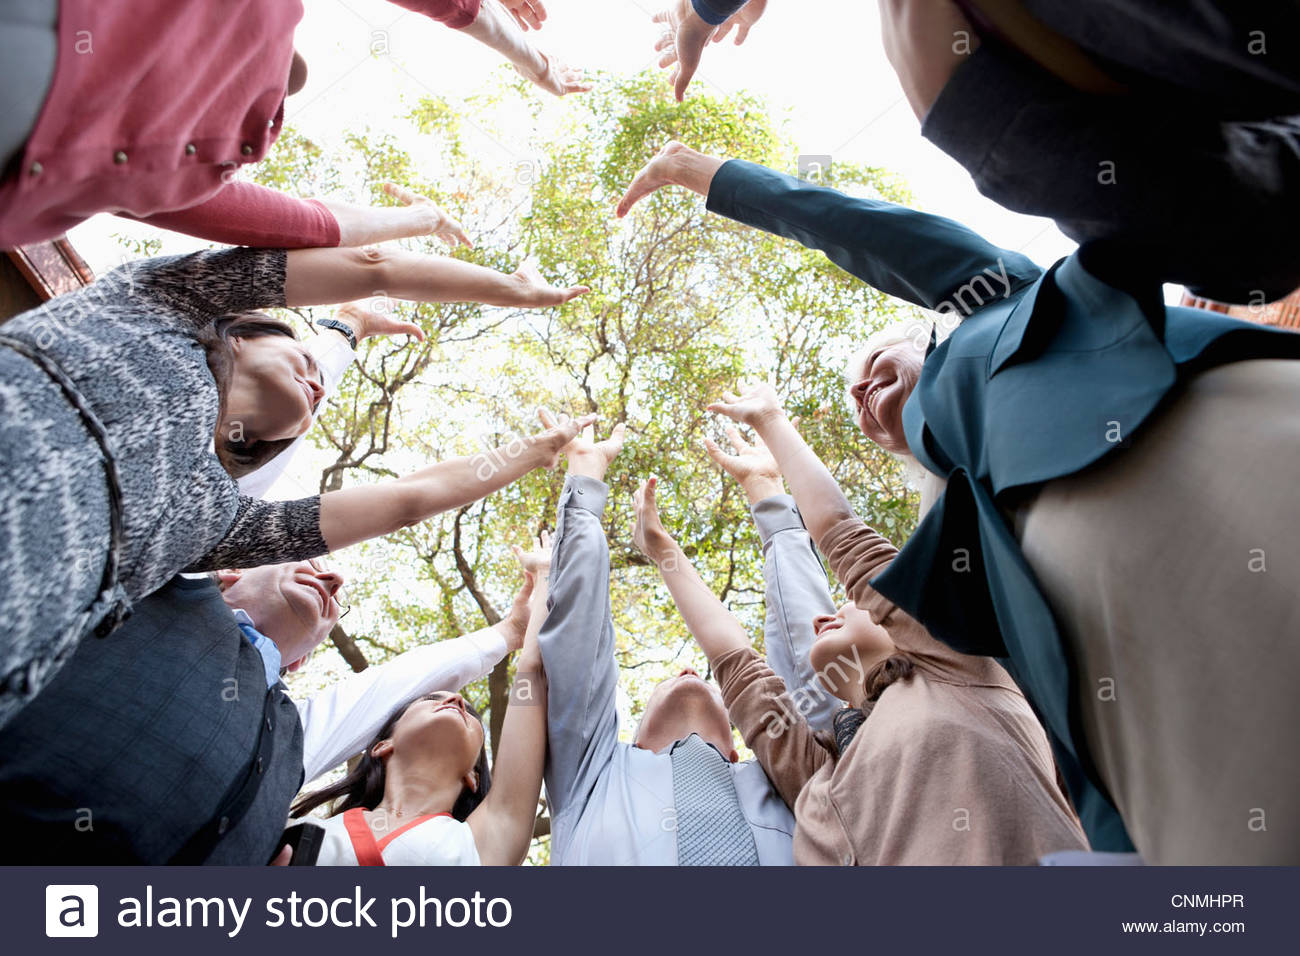 People in circle cheering together - Stock Image